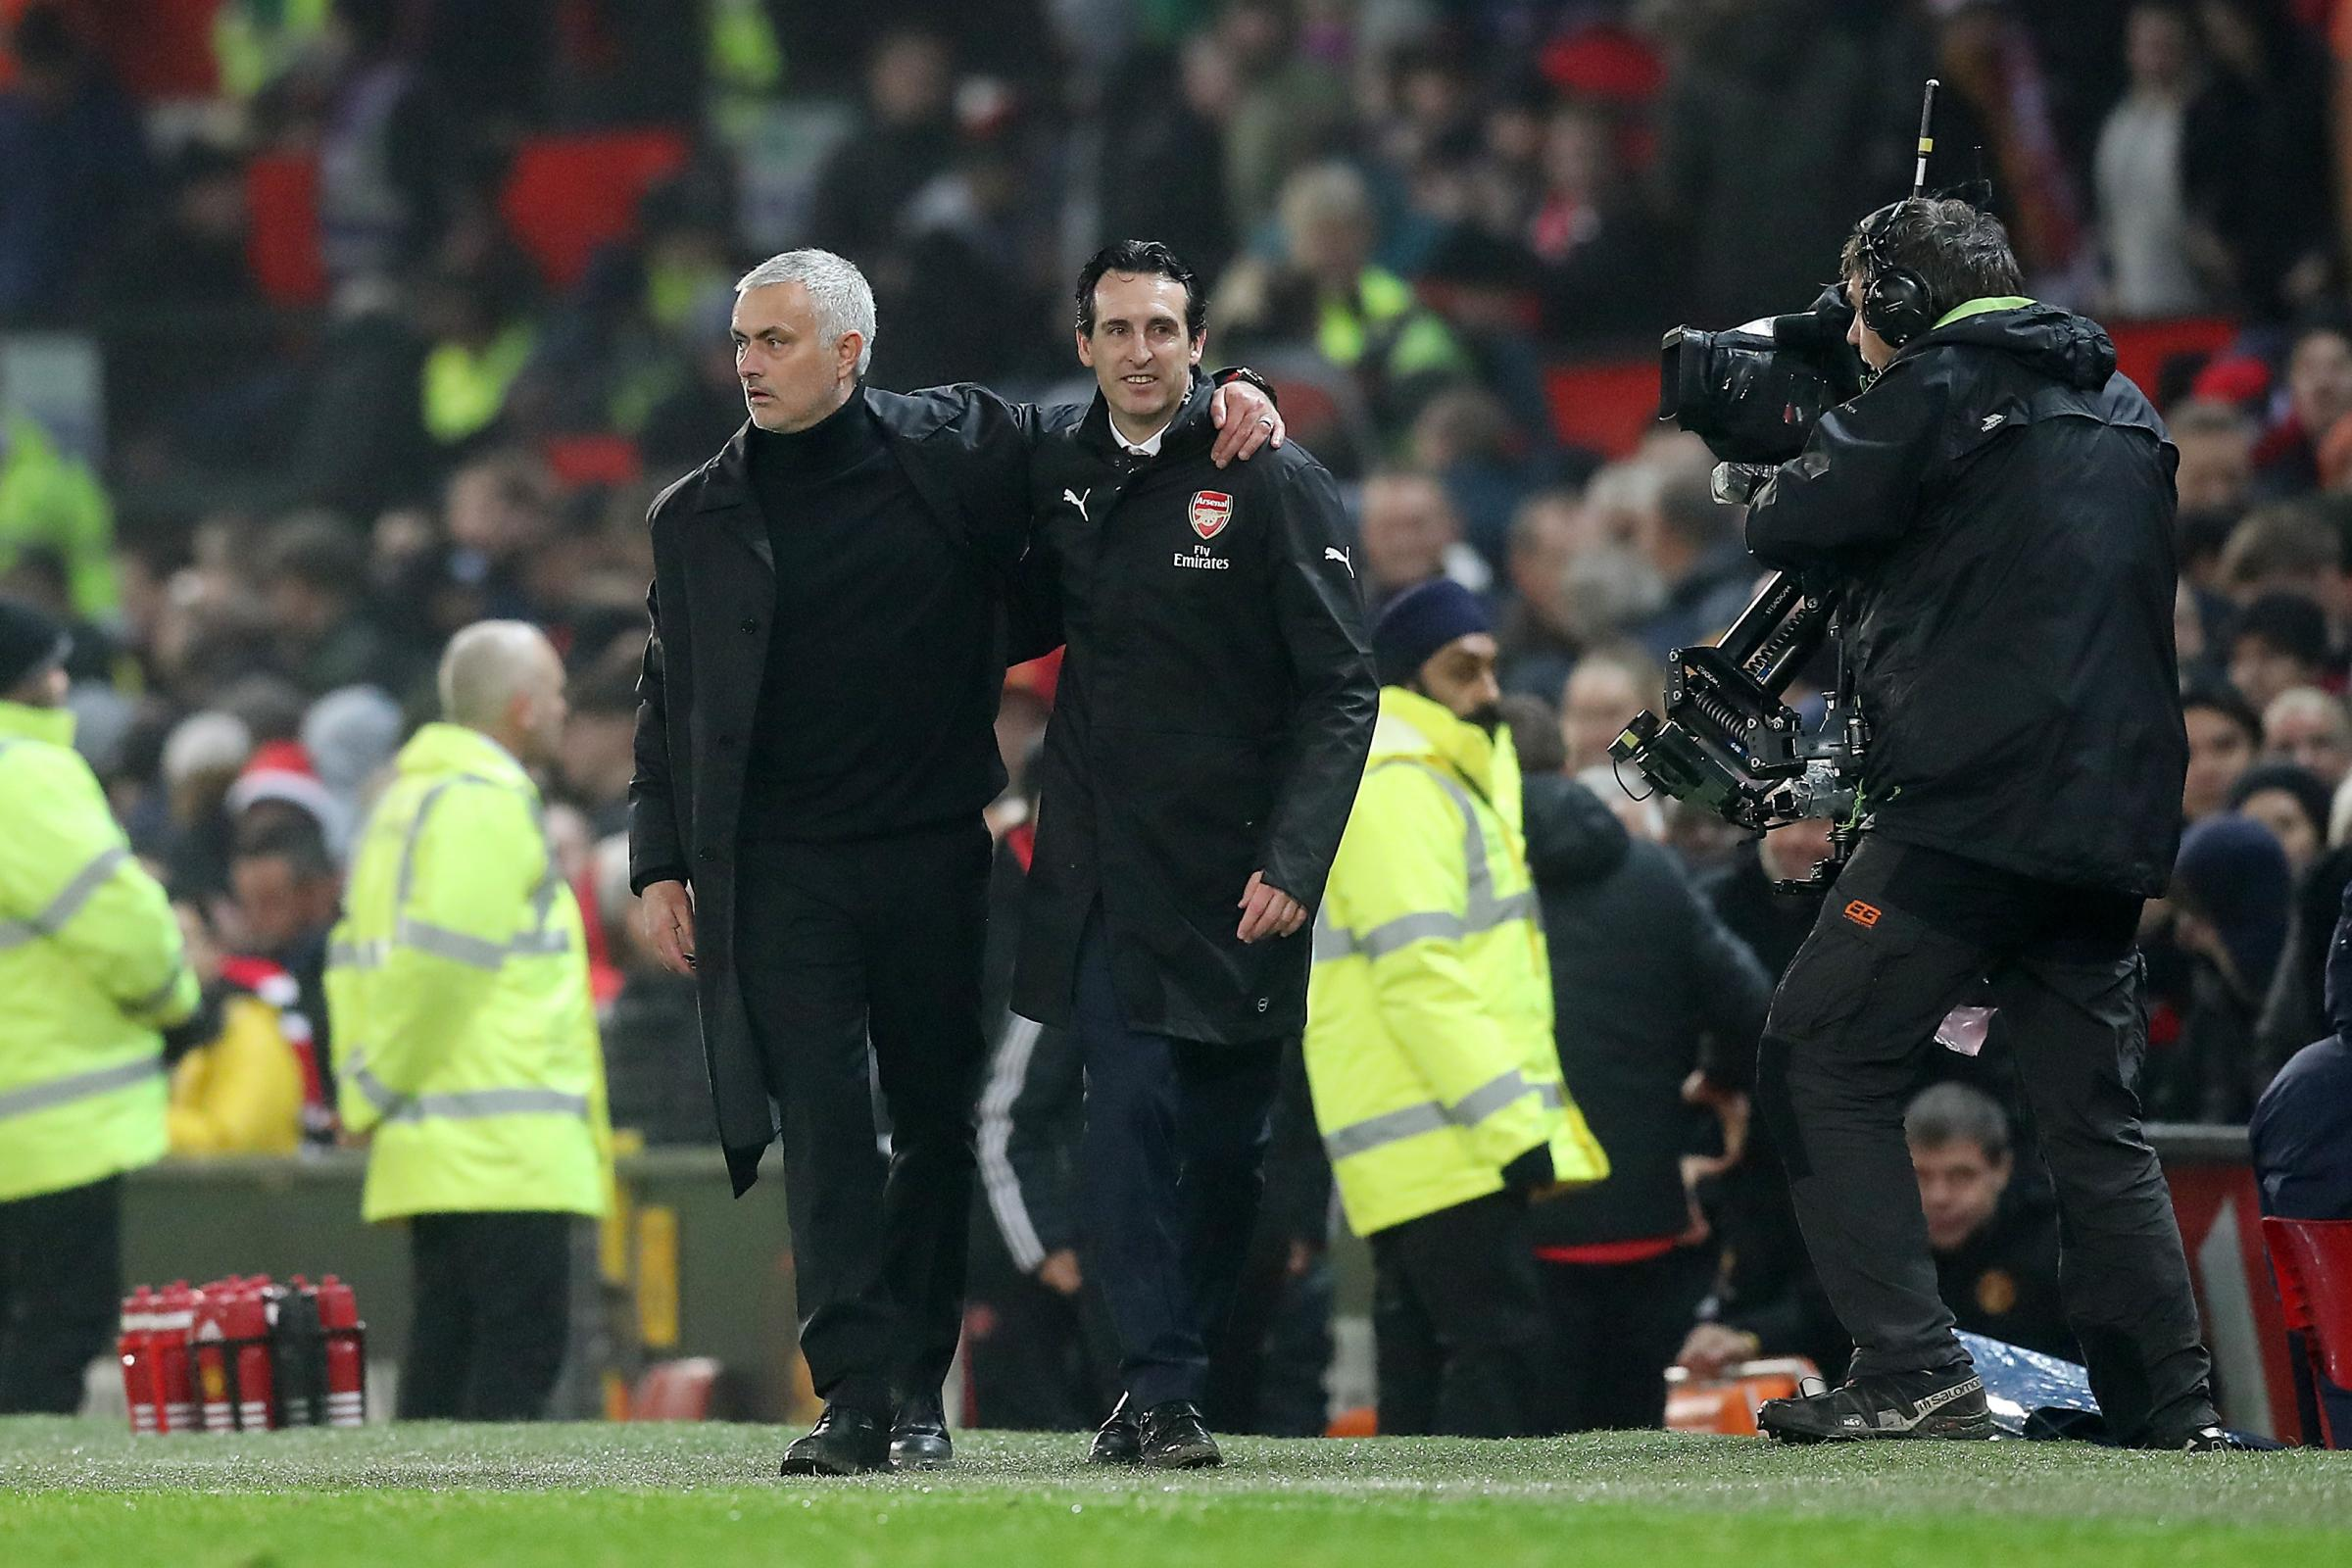 Jose Mourinho's Manchester United and Unai Emery's Arsenal played out an entertaining draw